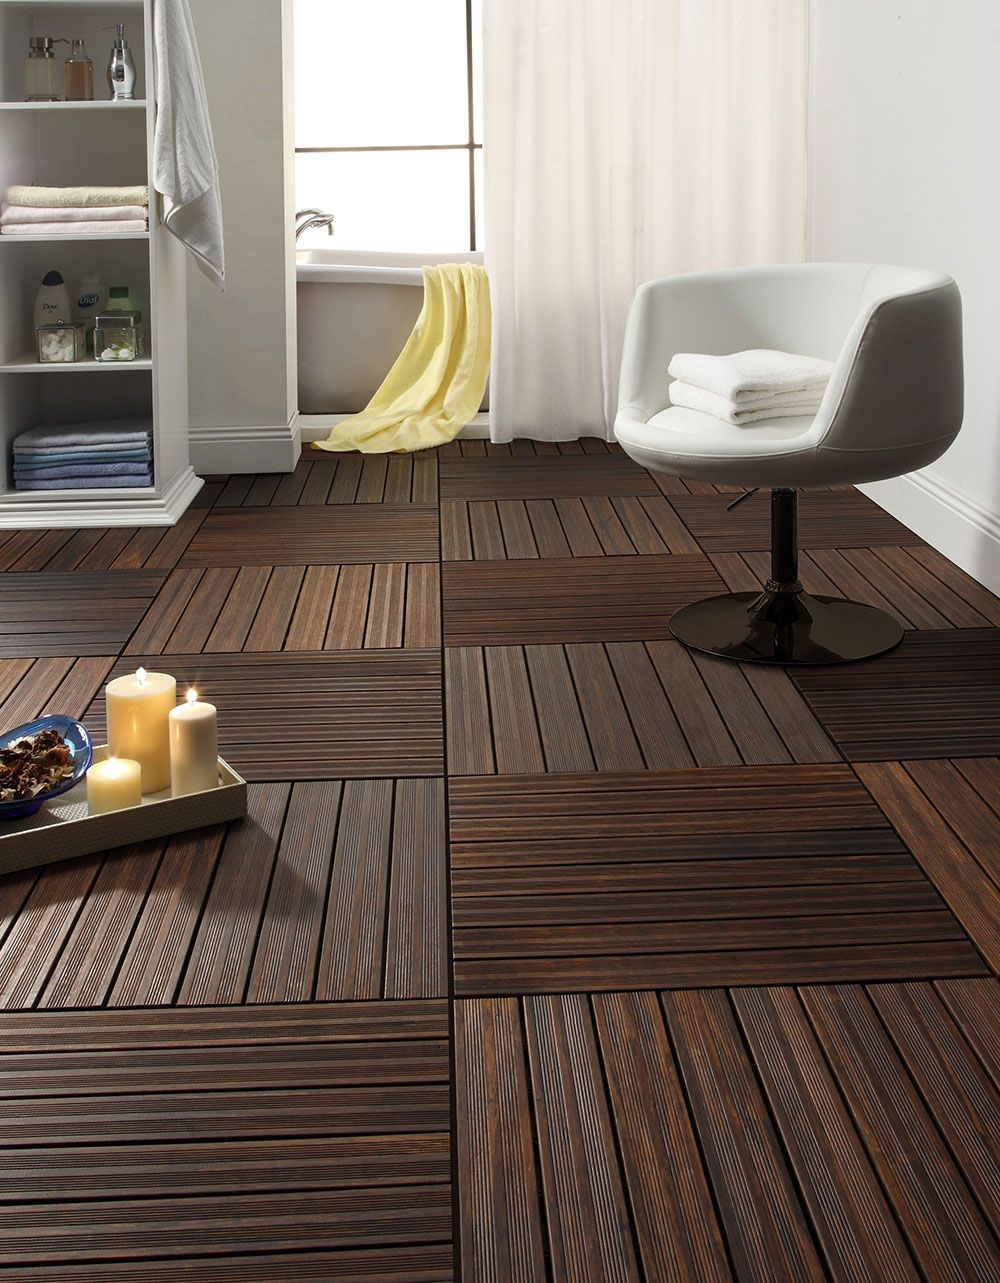 Bamboo deck tiles from dassoxtr my perfect home pinterest bamboo deck tiles from dassoxtr doublecrazyfo Choice Image